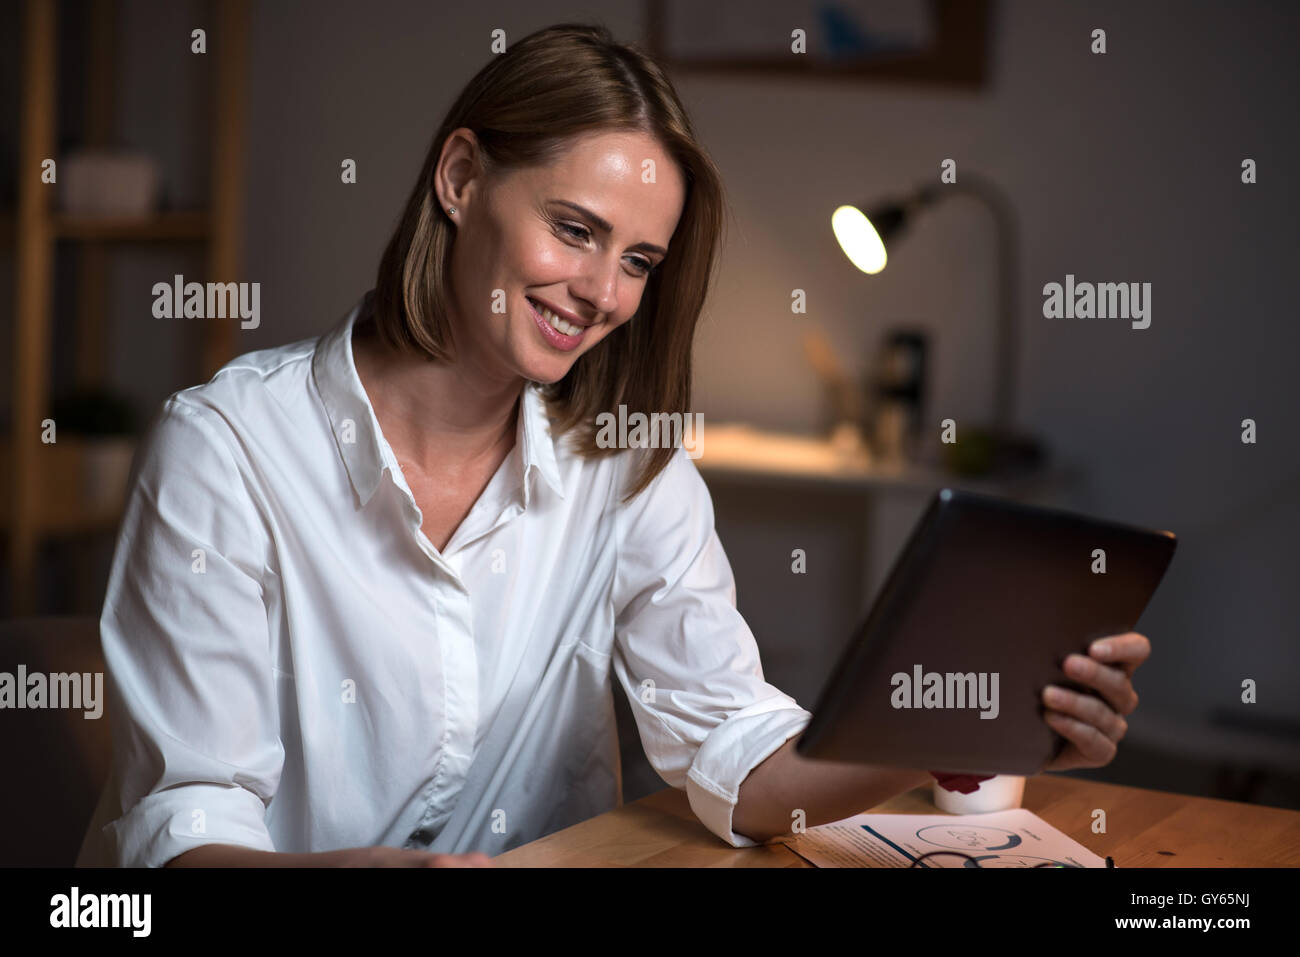 Joyful woman sitting at the table - Stock Image